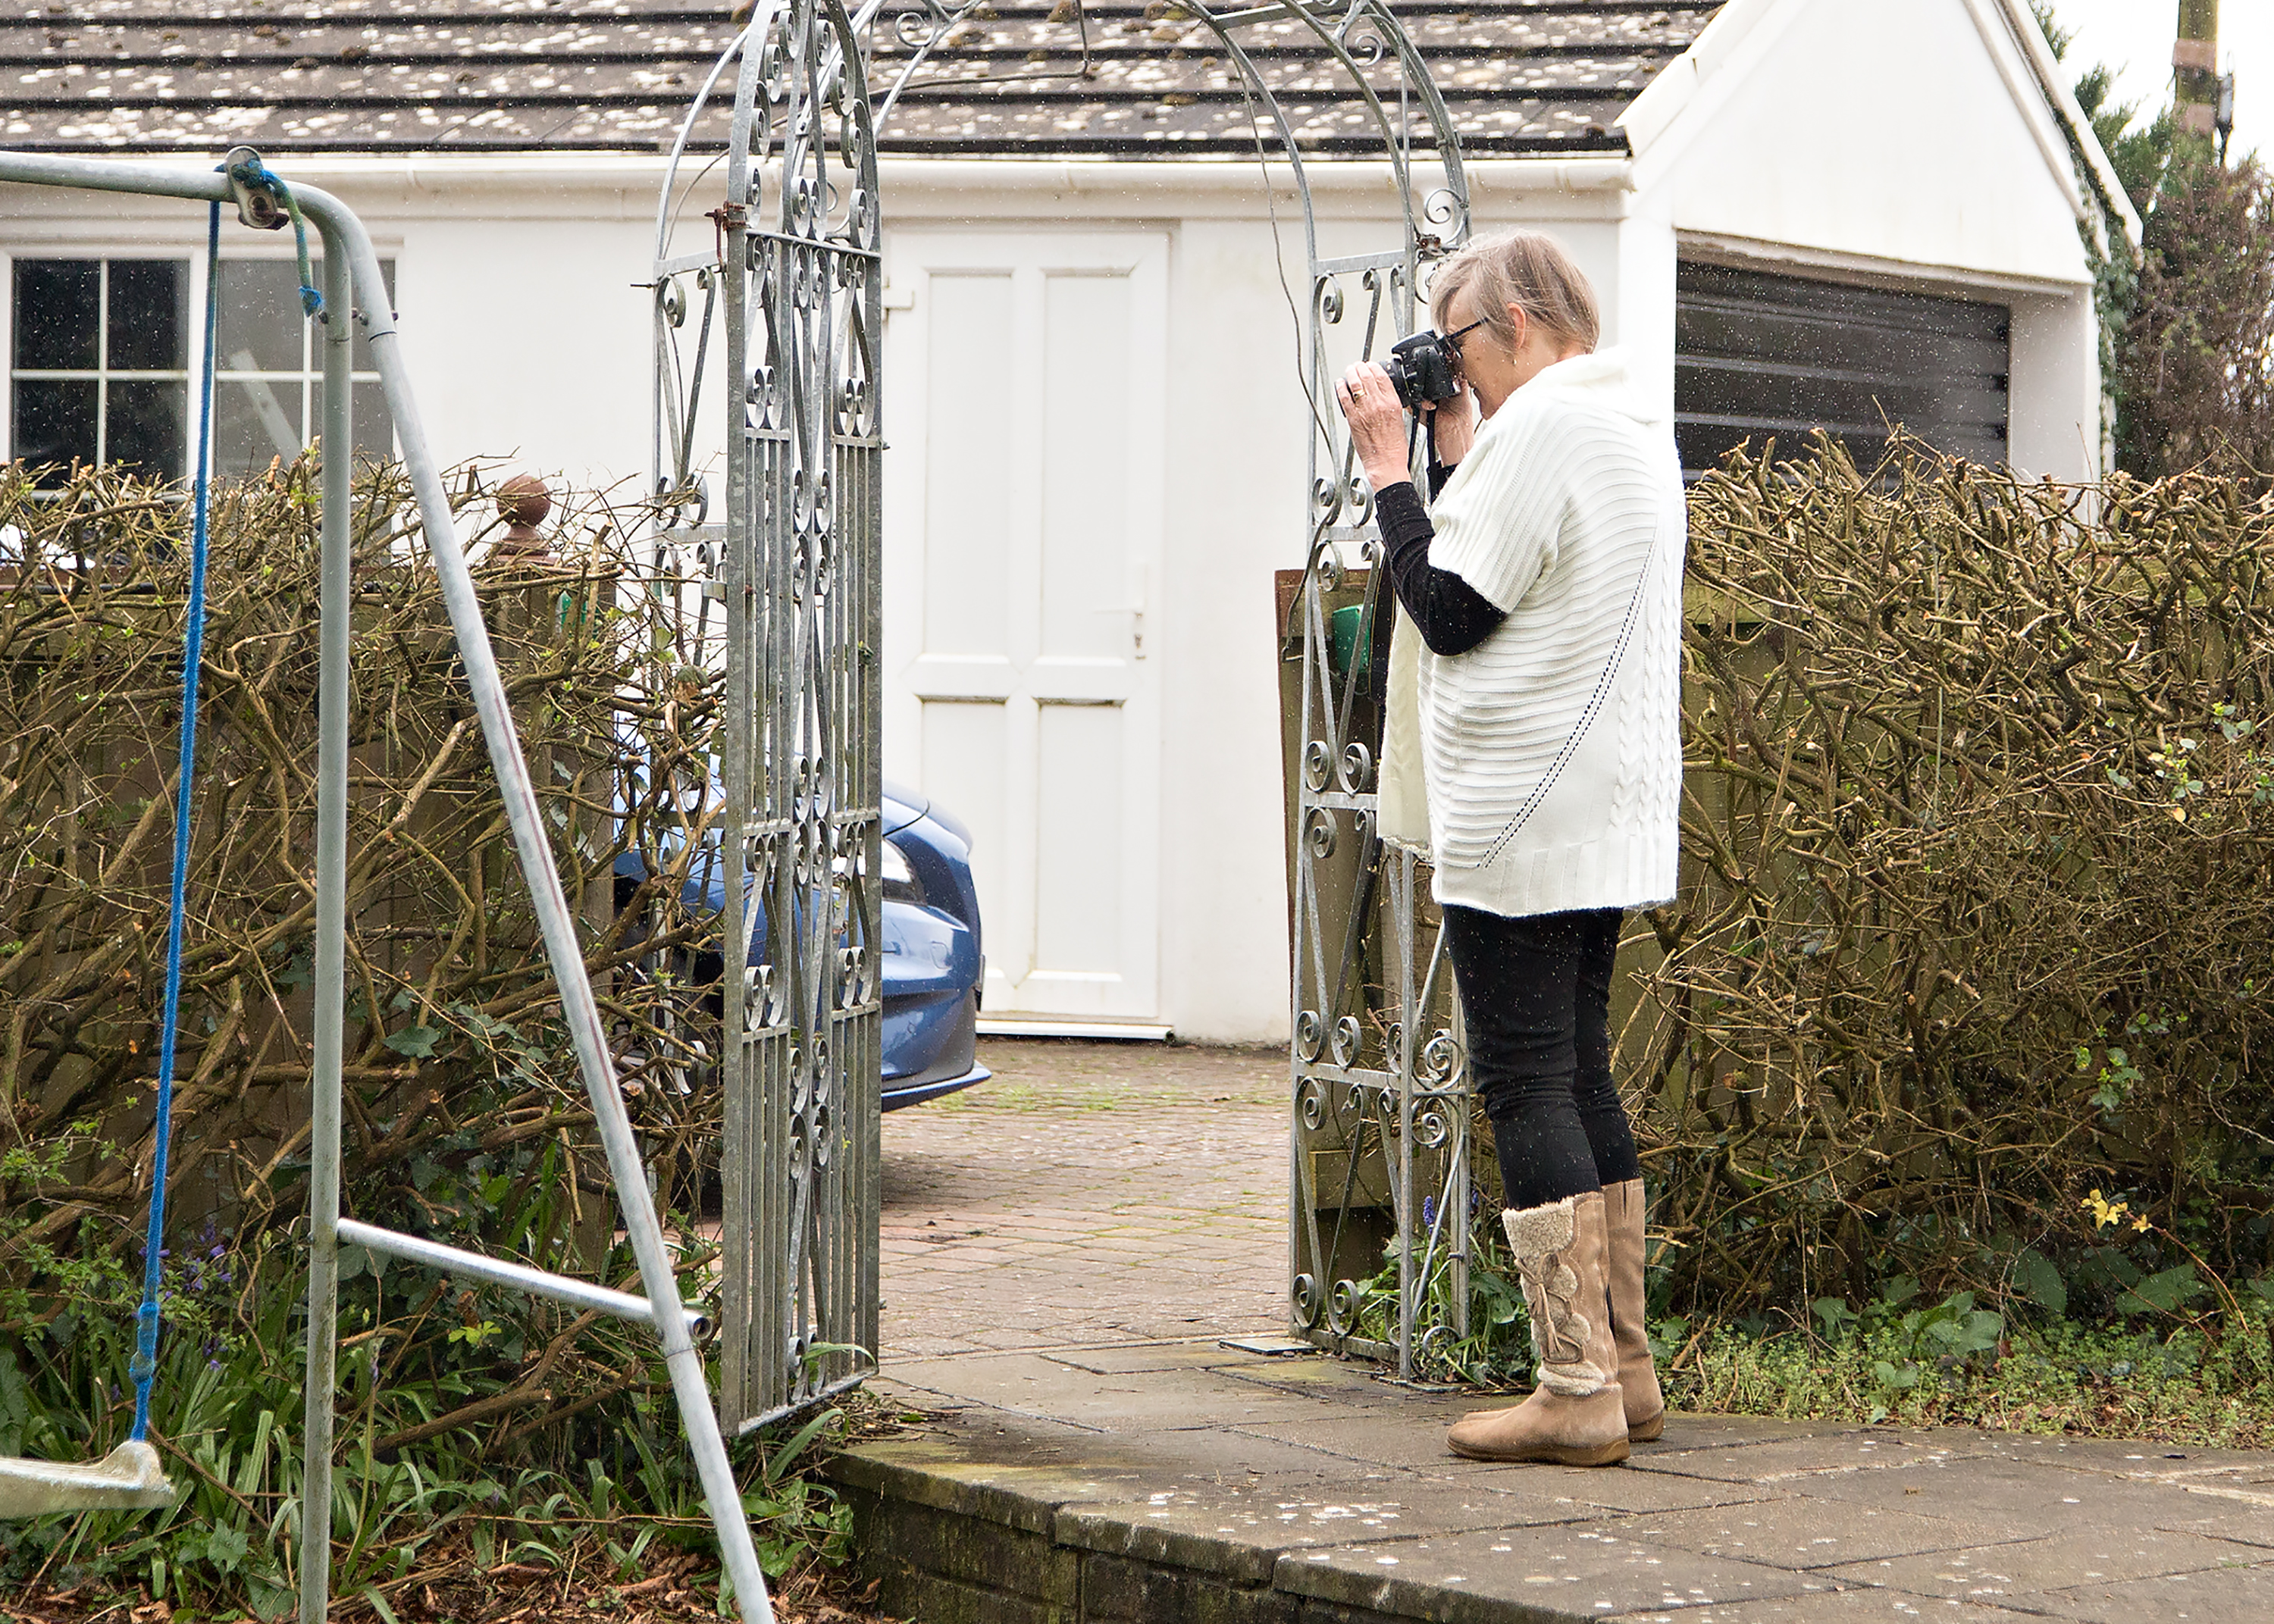 Woman taking photo on photography training course